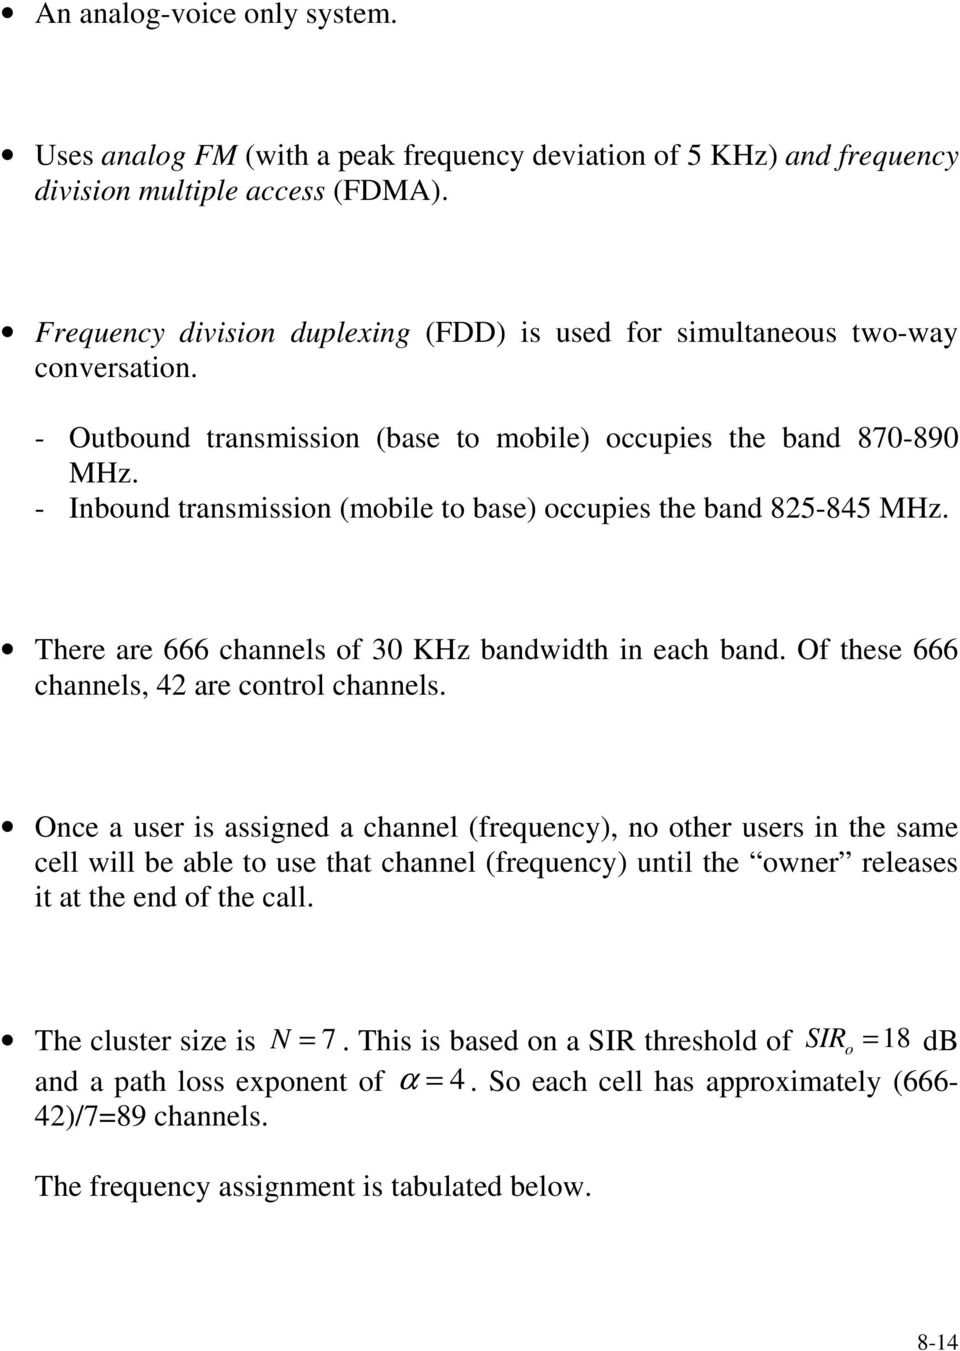 - Inbound transmission (mobile to base) occupies the band 825-845 MHz. There are 666 channels of 30 KHz bandwidth in each band. Of these 666 channels, 42 are control channels.